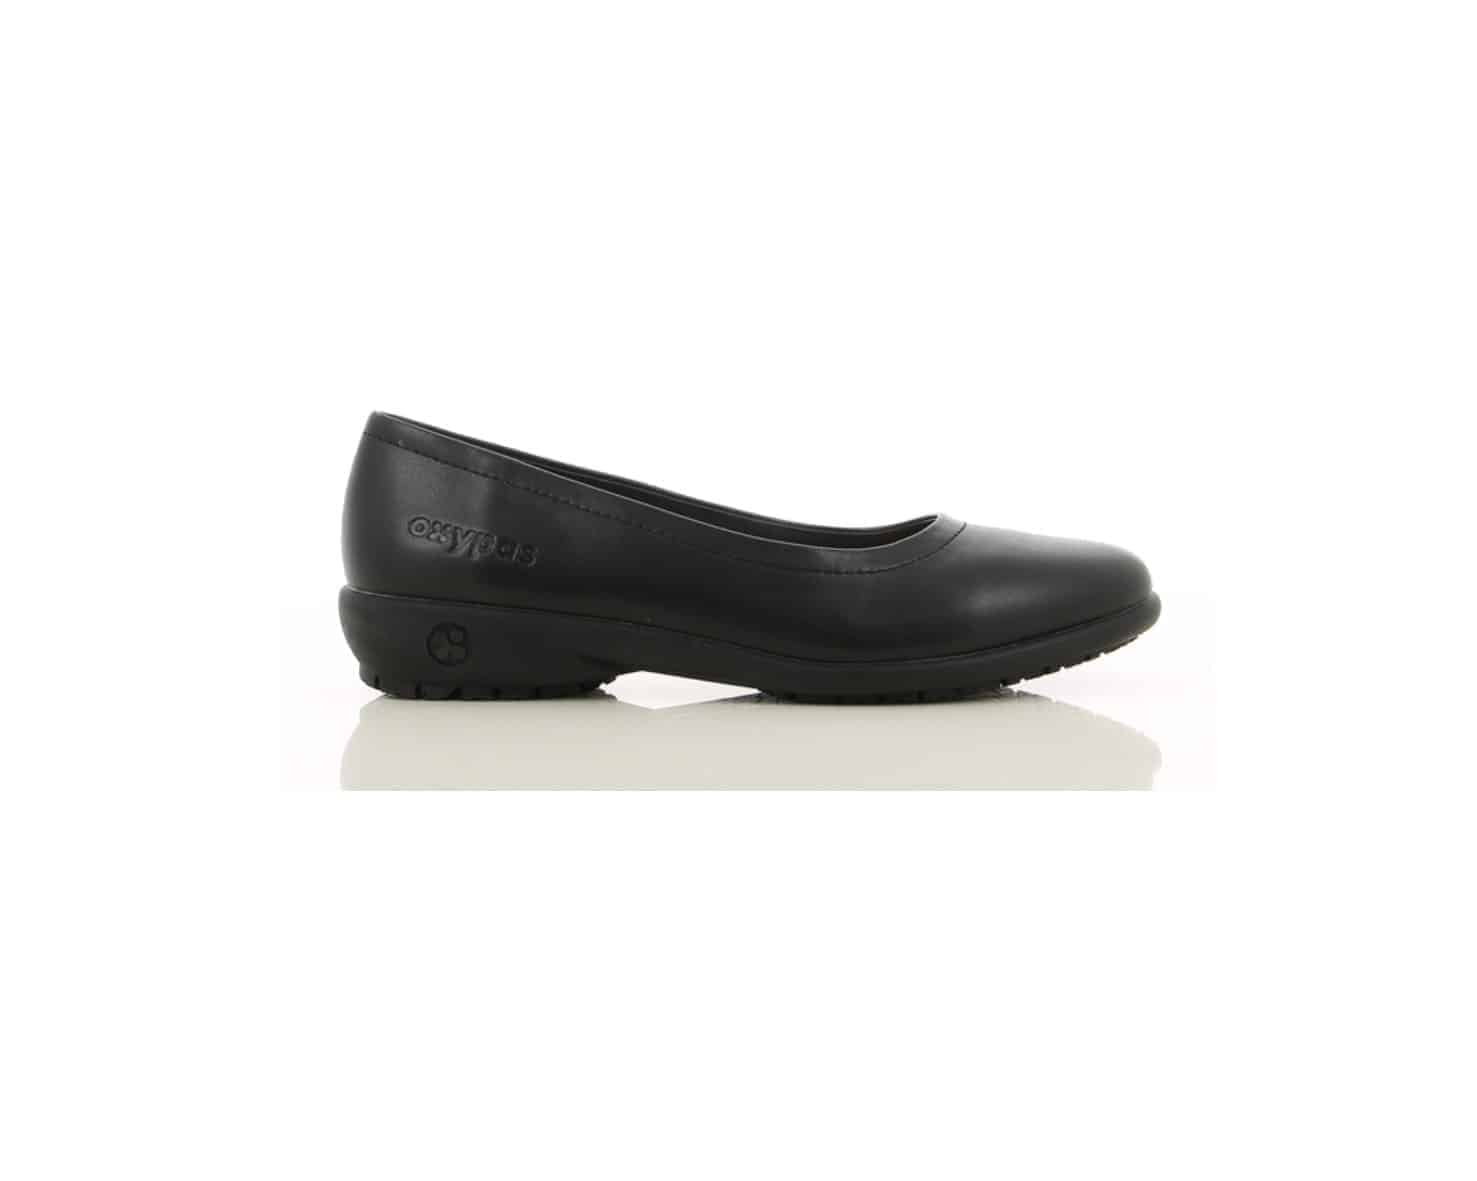 Slip-on, Anti-slip, Comfortable Court Shoe